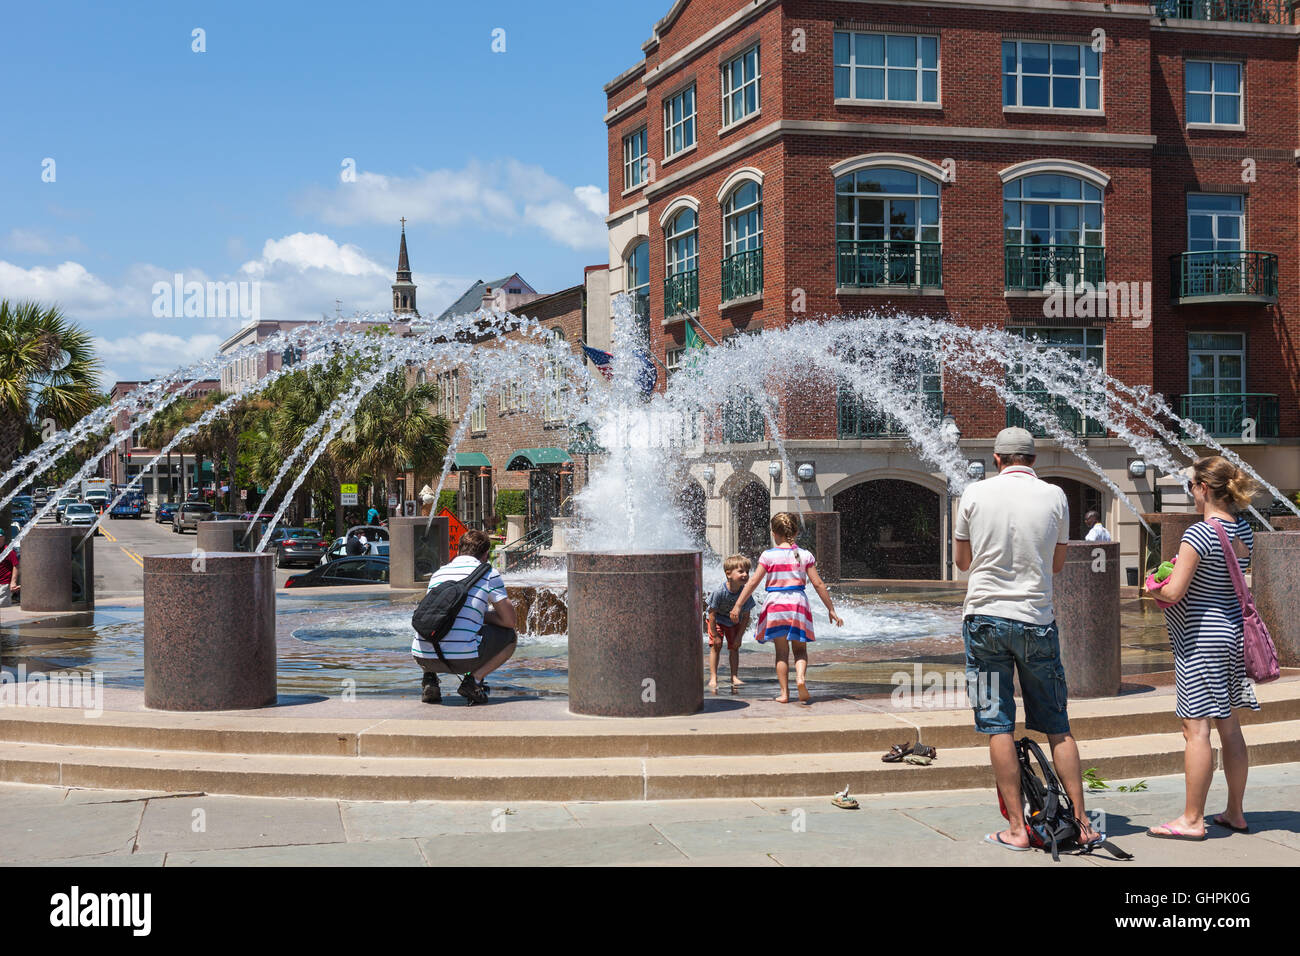 People enjoy one of the fountains in Waterfront Park in Charleston, South Carolina. - Stock Image